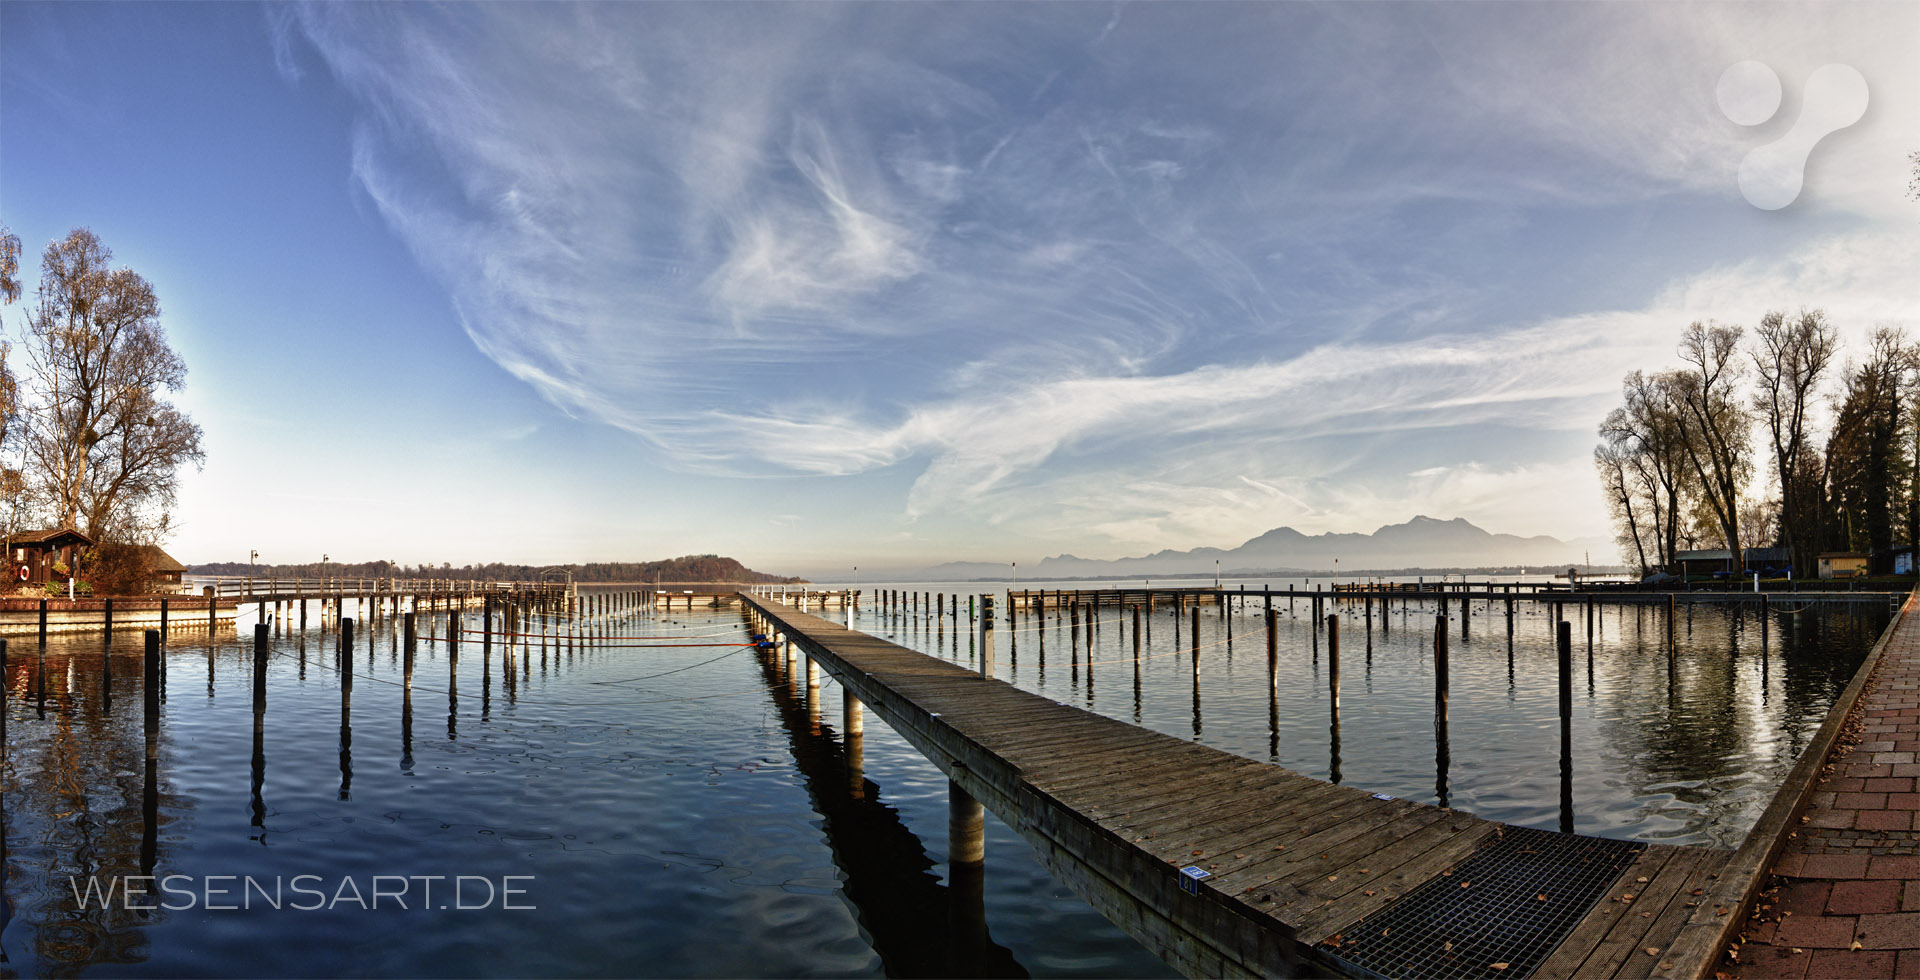 Prien am chiemsee yachthotel digitaler blogsatz for Chiemsee design hotel